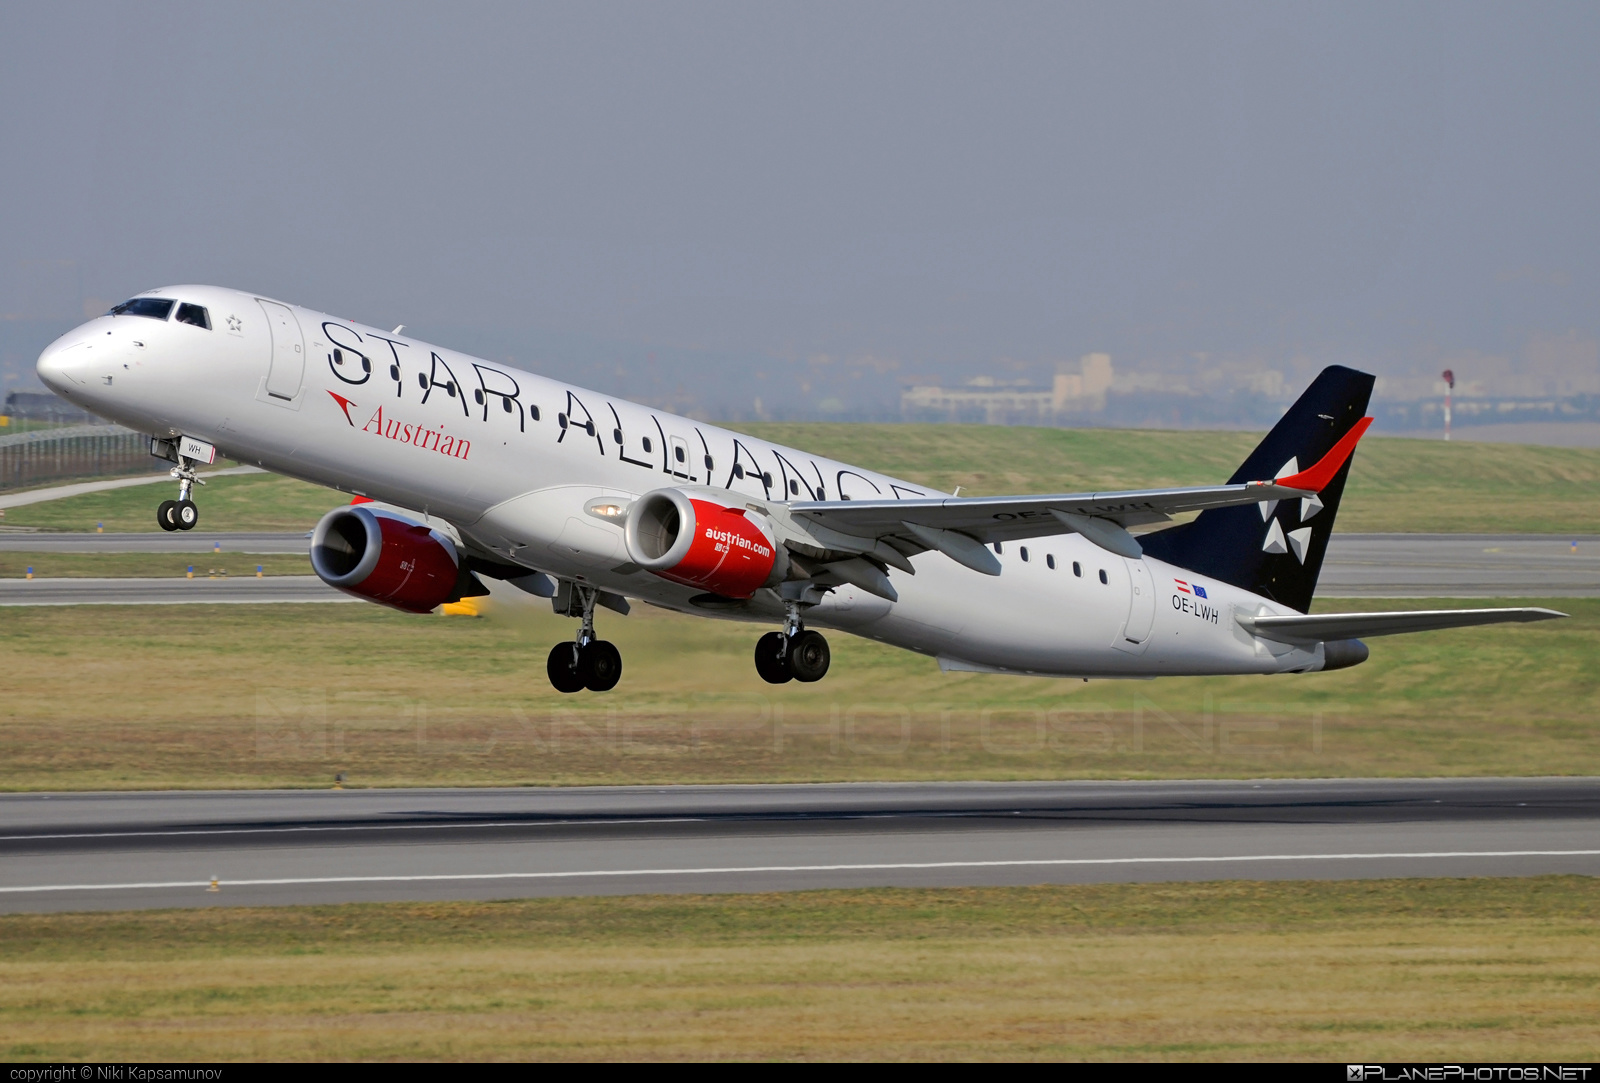 Embraer E195LR (ERJ-190-200LR) - OE-LWH operated by Austrian Airlines #e190 #e190200 #e190200lr #e195lr #embraer #embraer190200lr #embraer195 #embraer195lr #staralliance